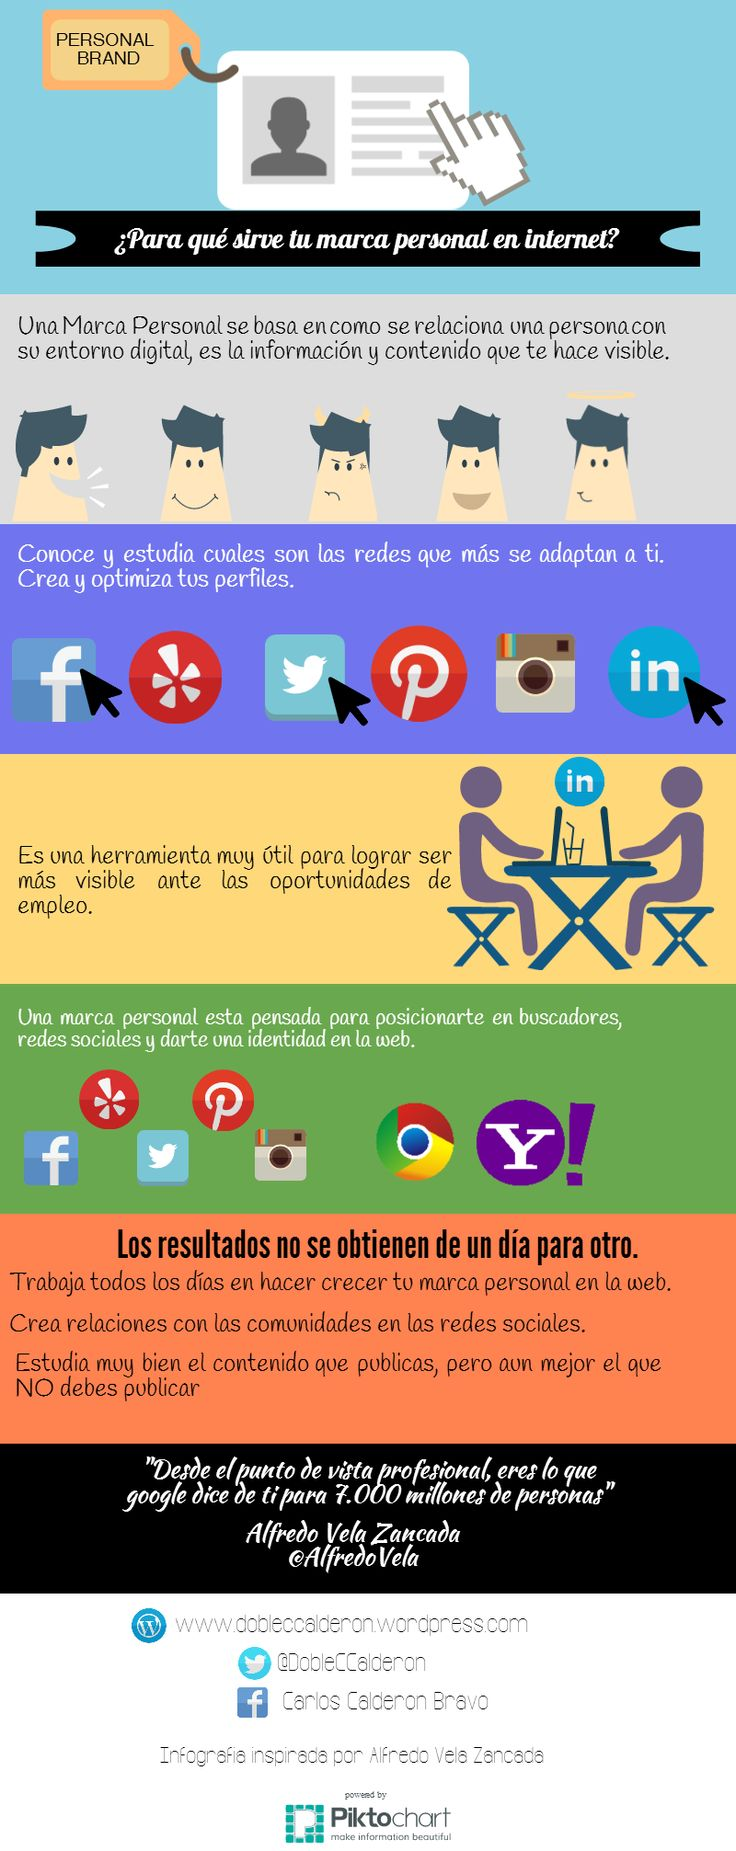 PARA QUÉ SIRVE TU MARCA PERSONAL EN INTERNET #INFOGRAFIA #INFOGRAPHIC #MARKETING